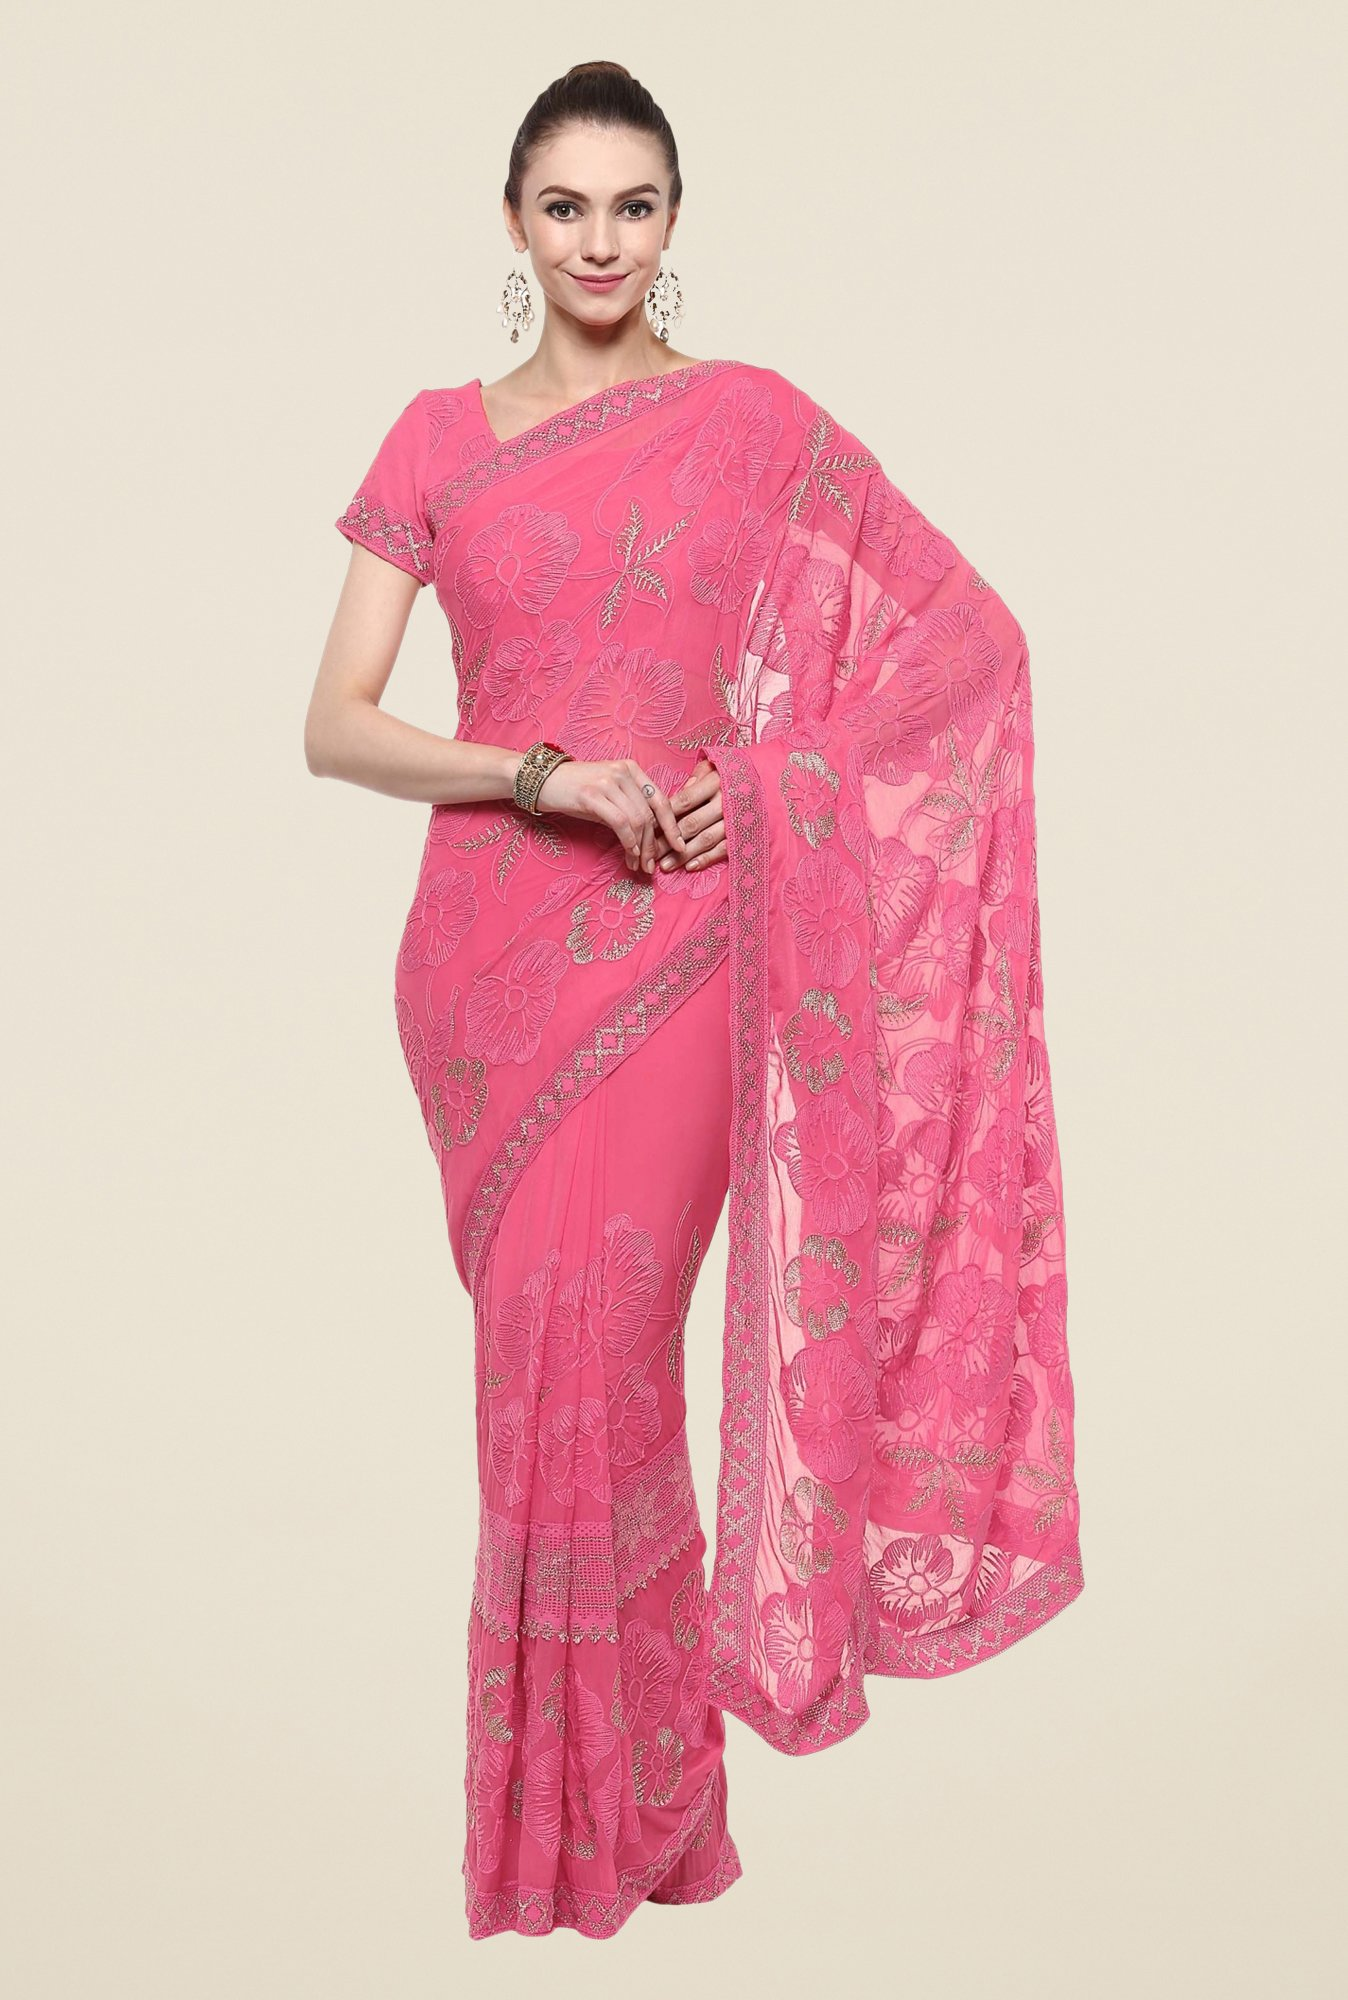 Triveni Pink Embroidered Chiffon Saree